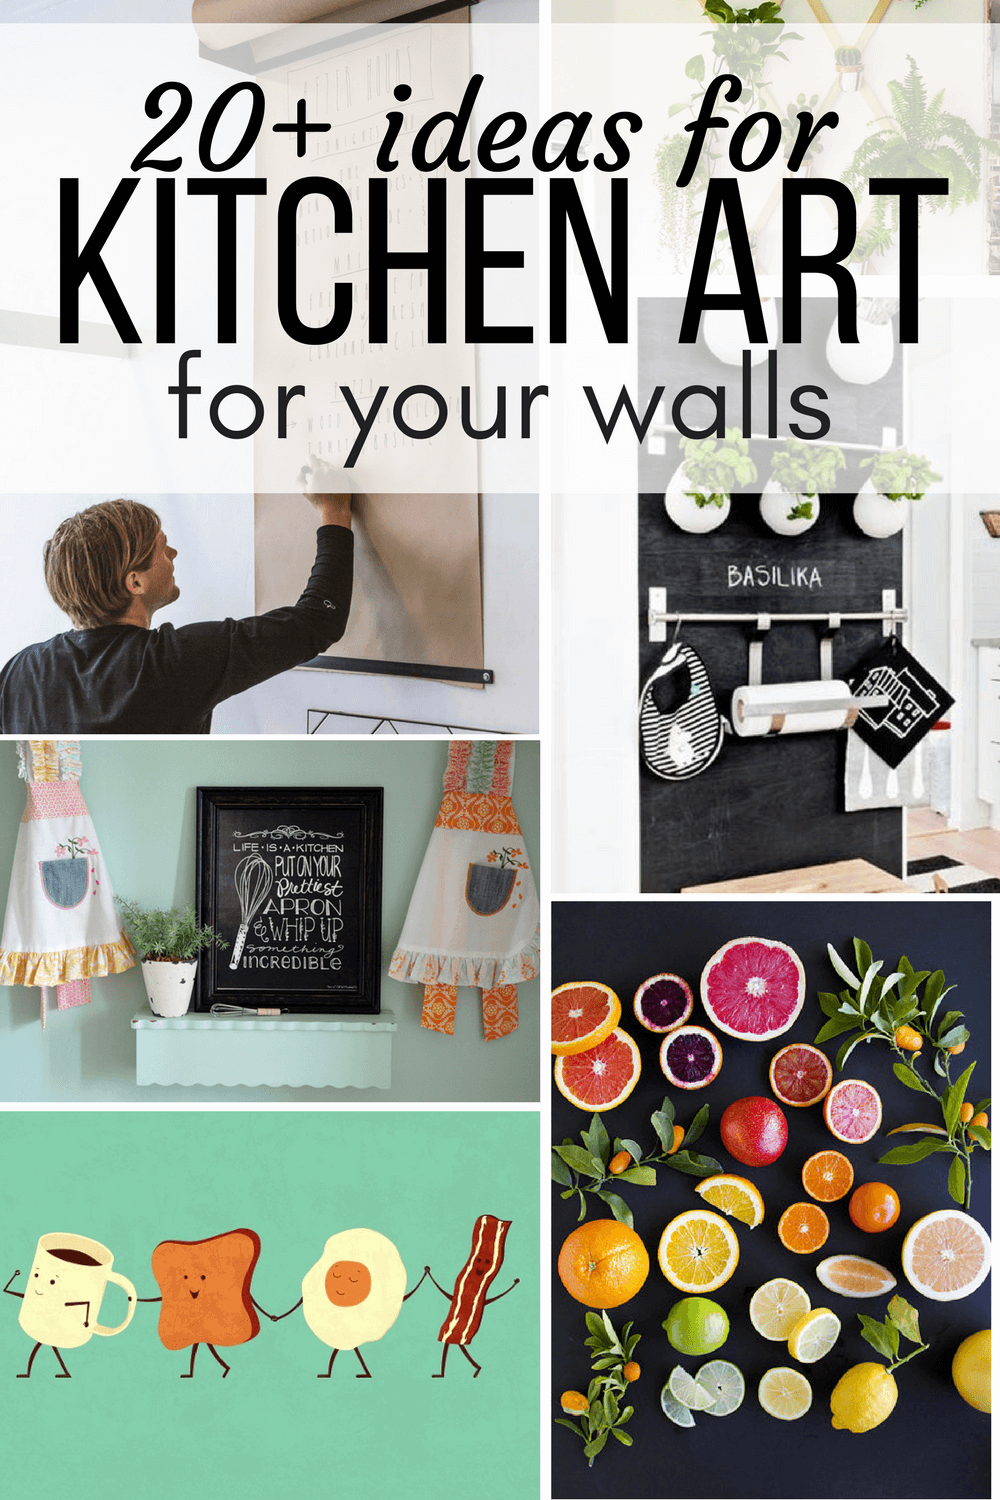 Collage of kitchen art ideas